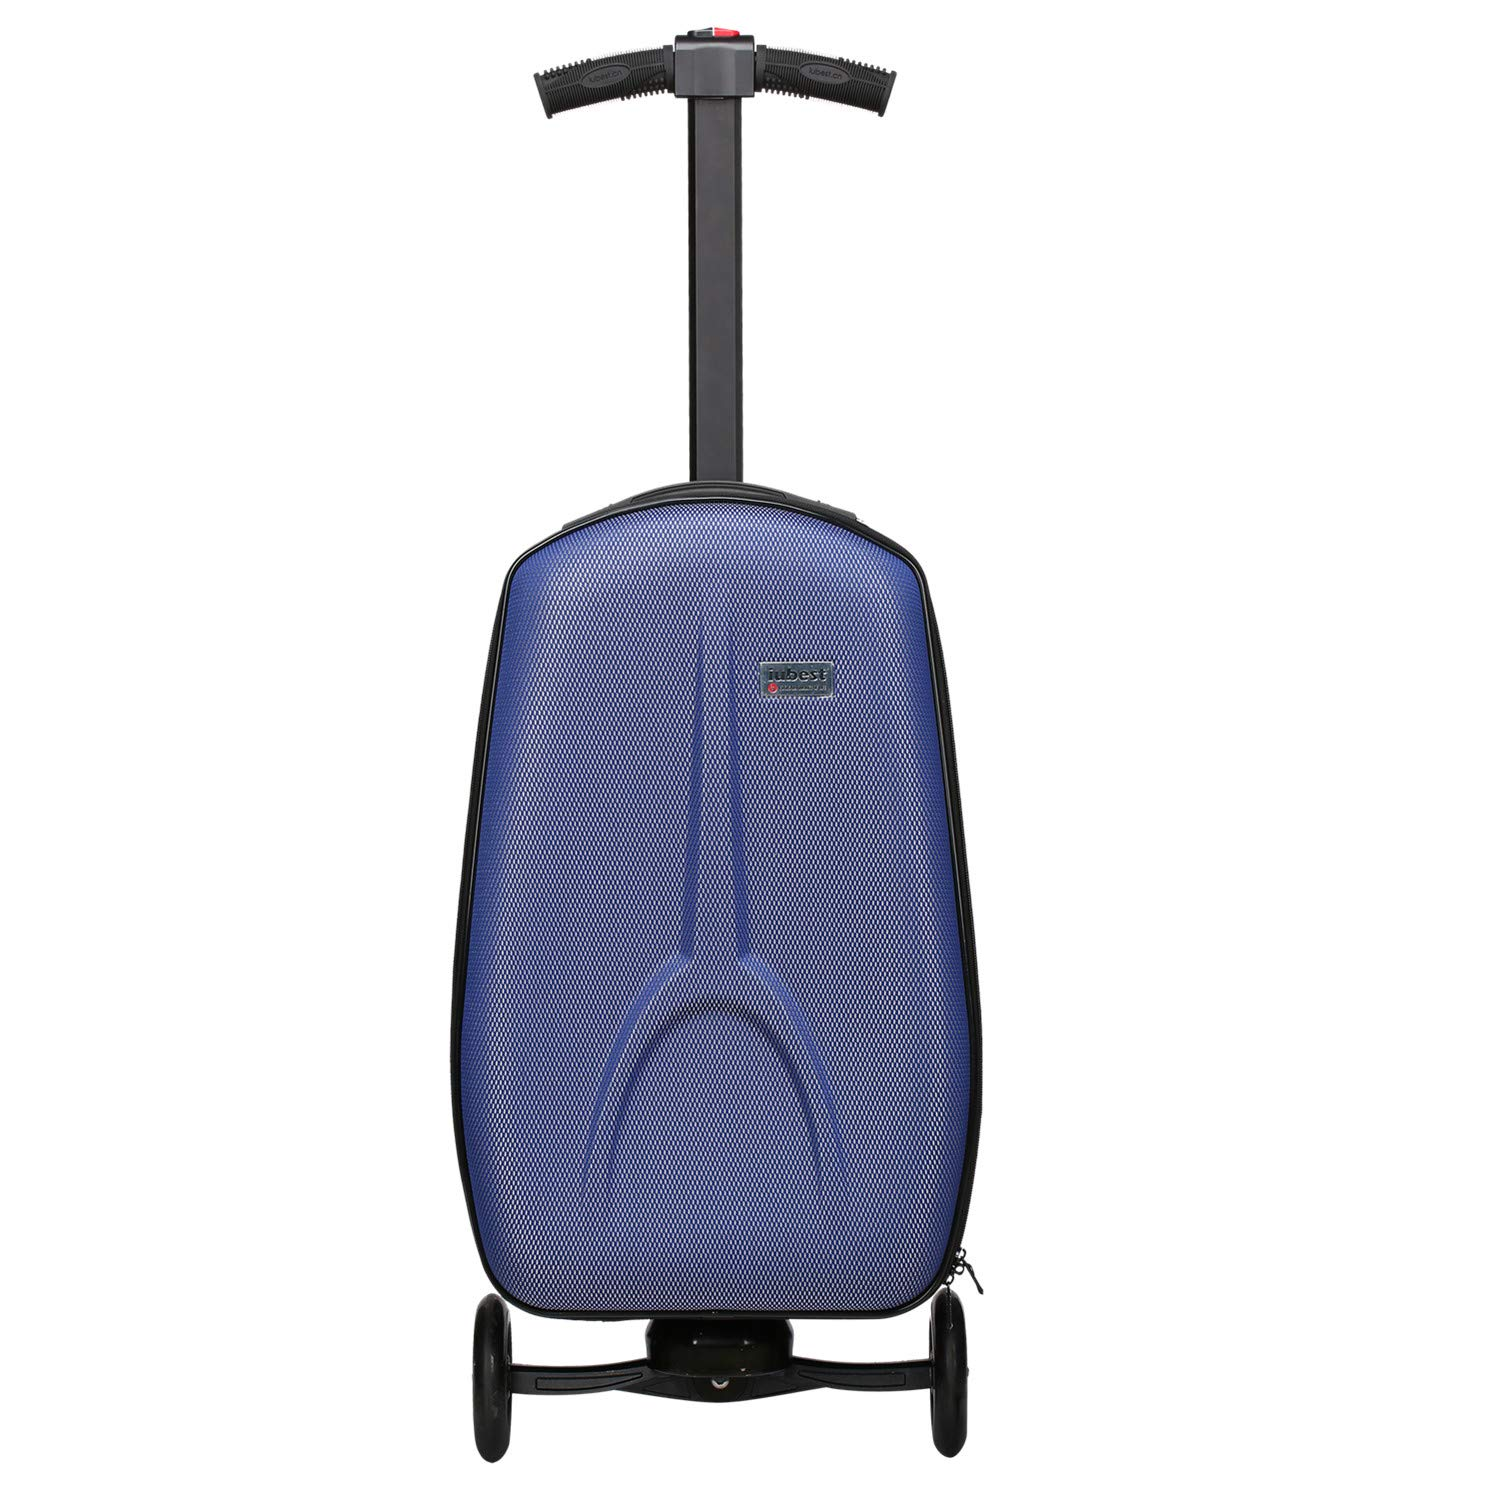 27b53da72 Amazon.com | iubest Scooter Luggage for Adult Carry on Suitcase Foldable Trolley  Case Bags for Travel, Business and School Men 50 liter, 18 inches (Blue) ...